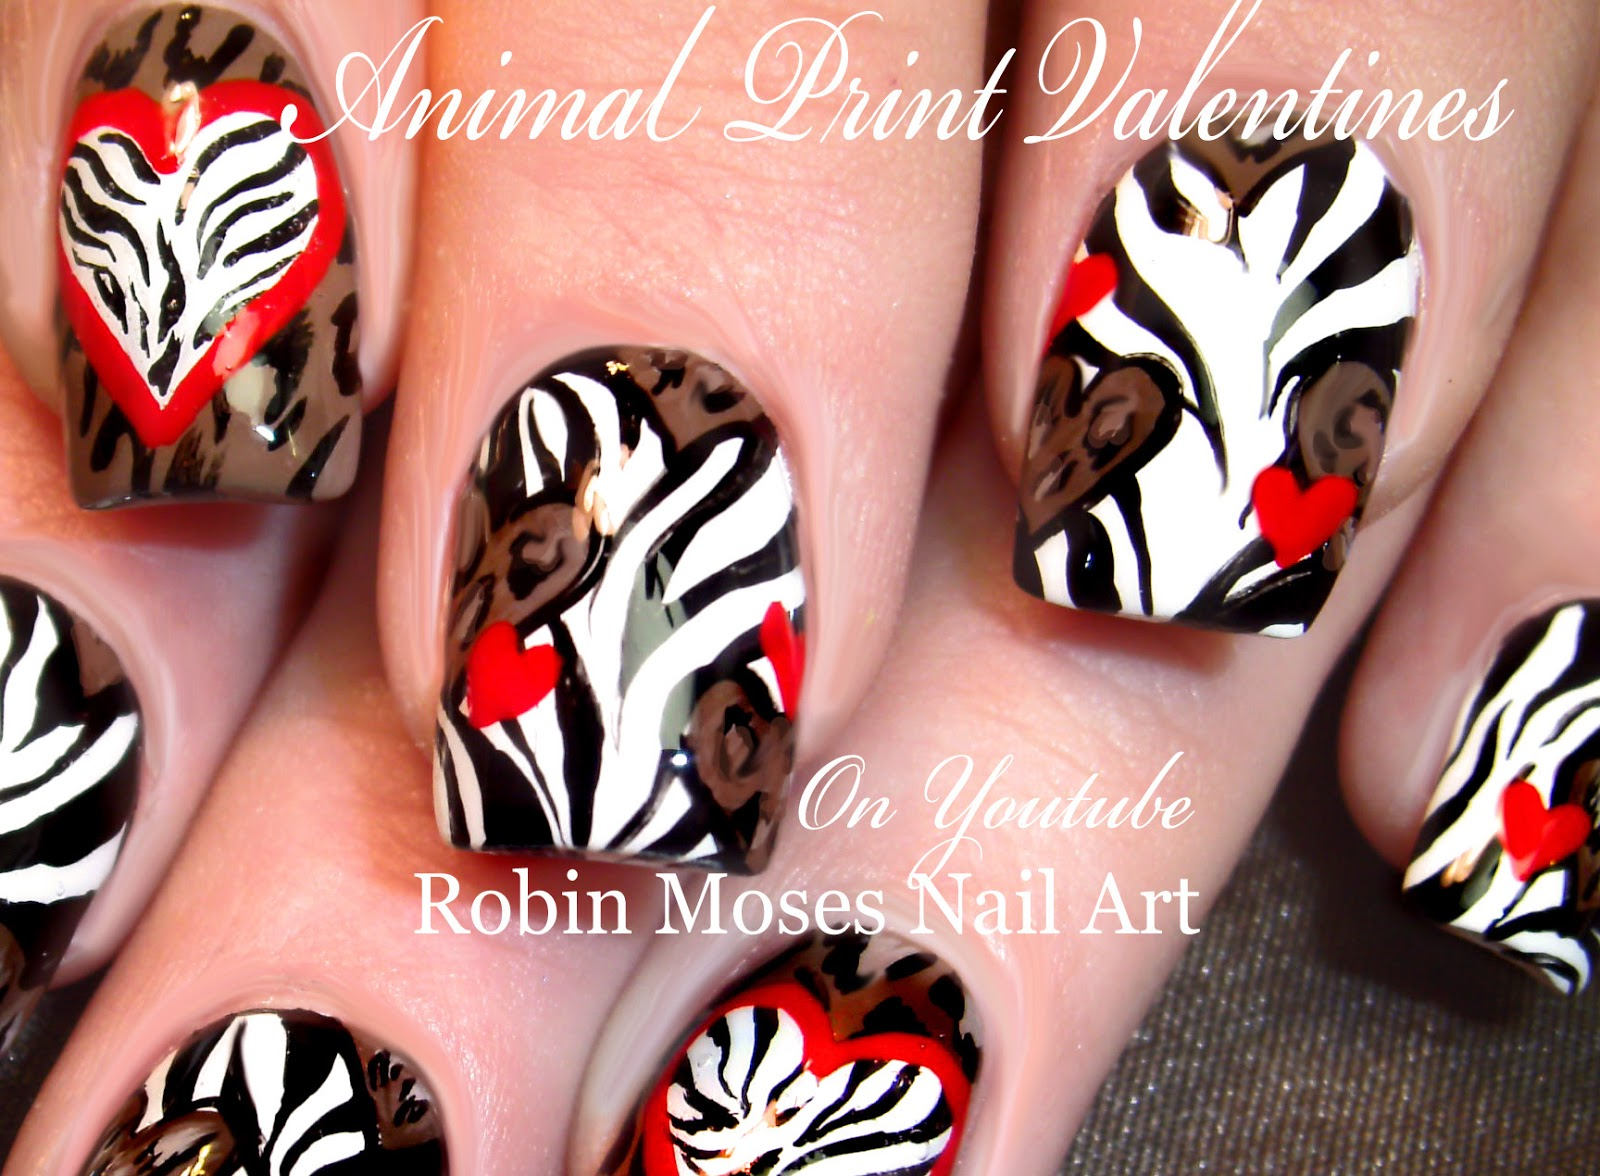 Robin moses nail art animal print hearts animal print nails animal print hearts animal print nails wild valenties unusual valentine valentine nail art valentine ideas animl print valentine prinsesfo Choice Image